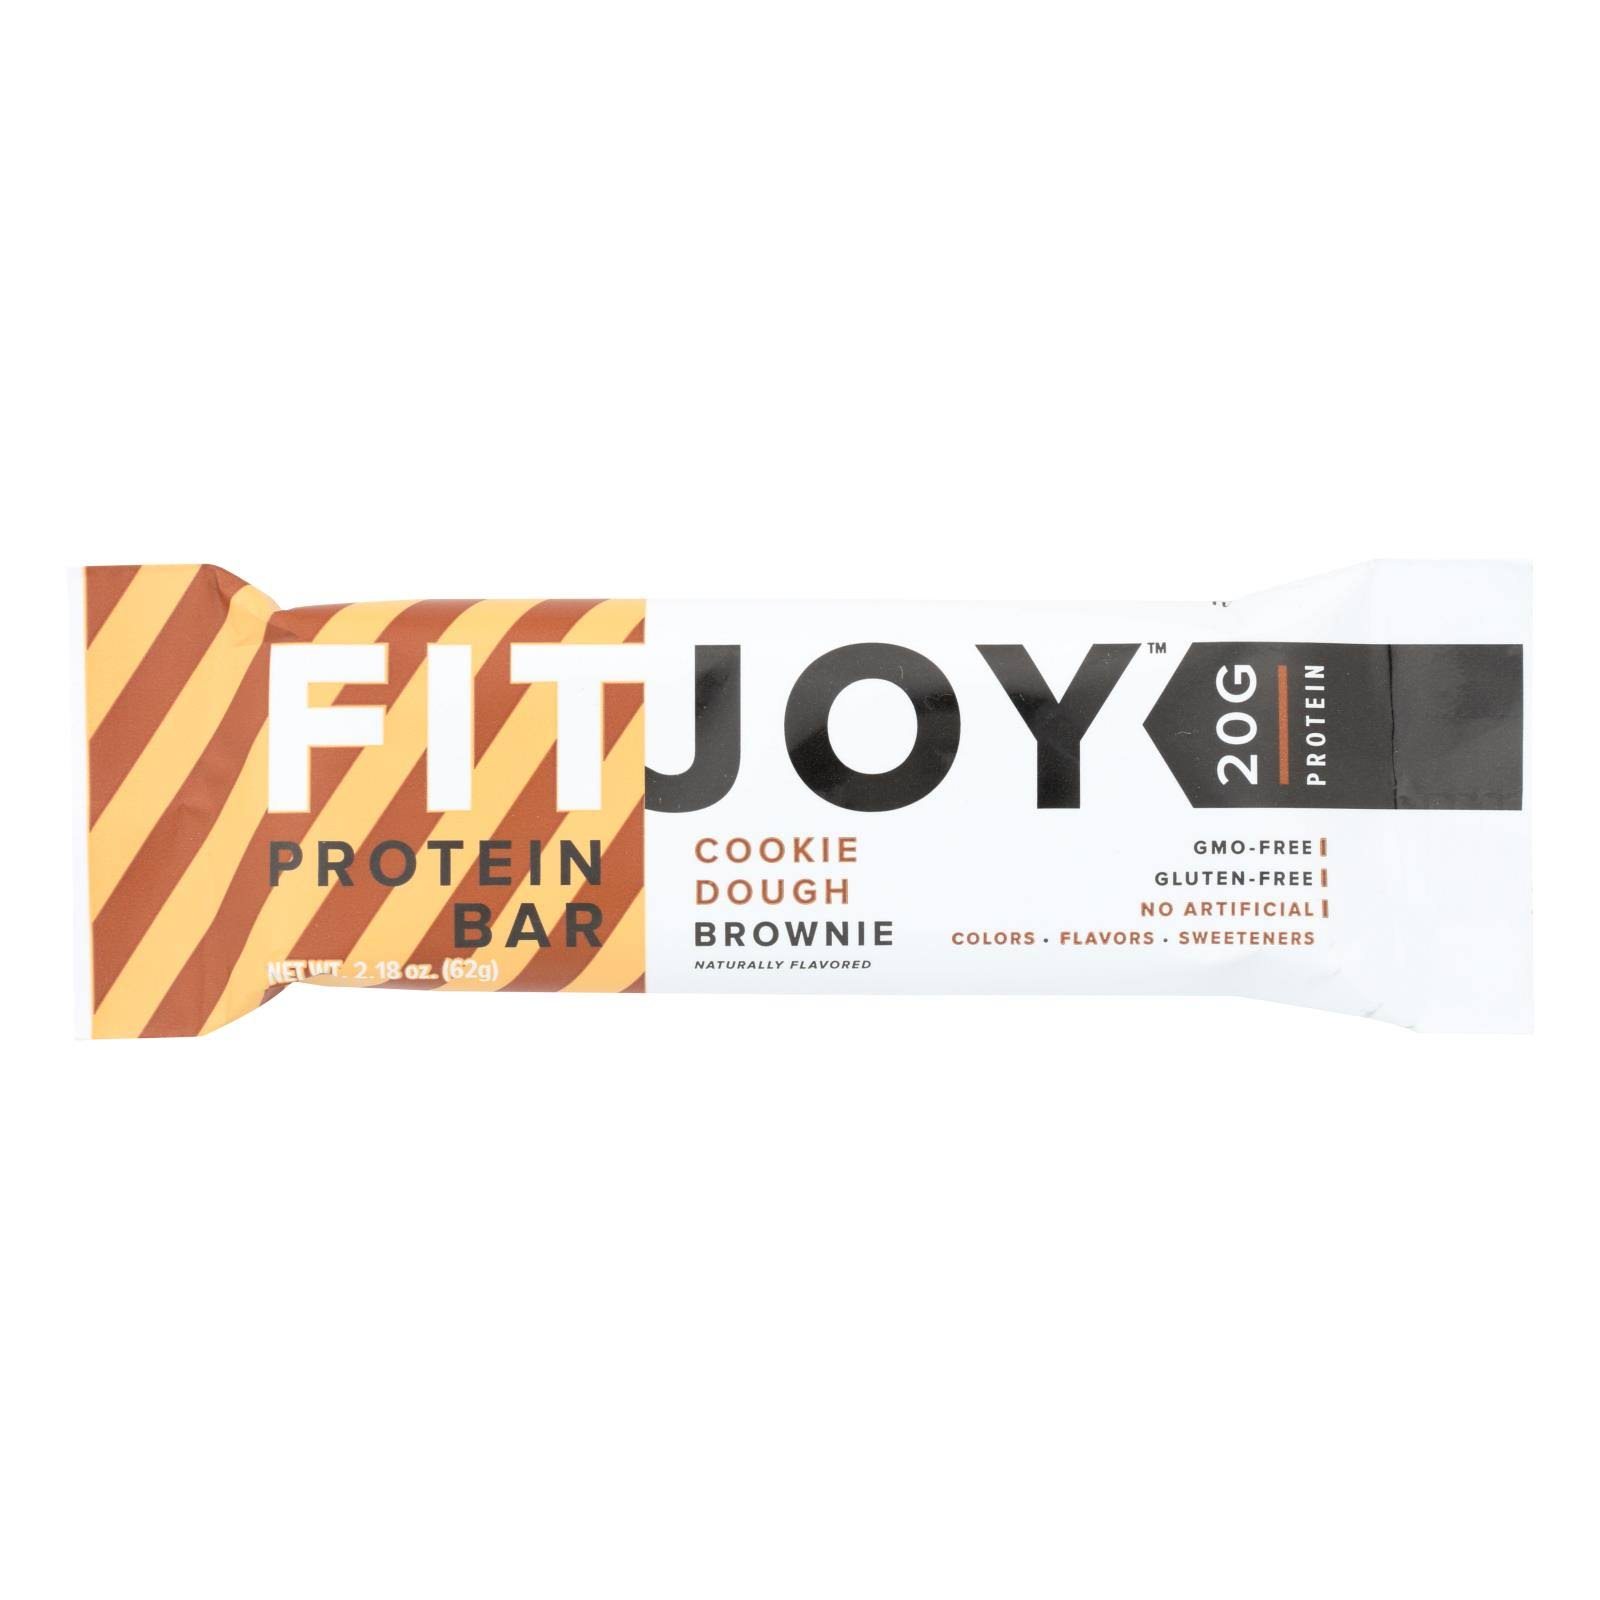 FitJoy Protein Bar, Cookie Dough Brownie - 2.18 oz